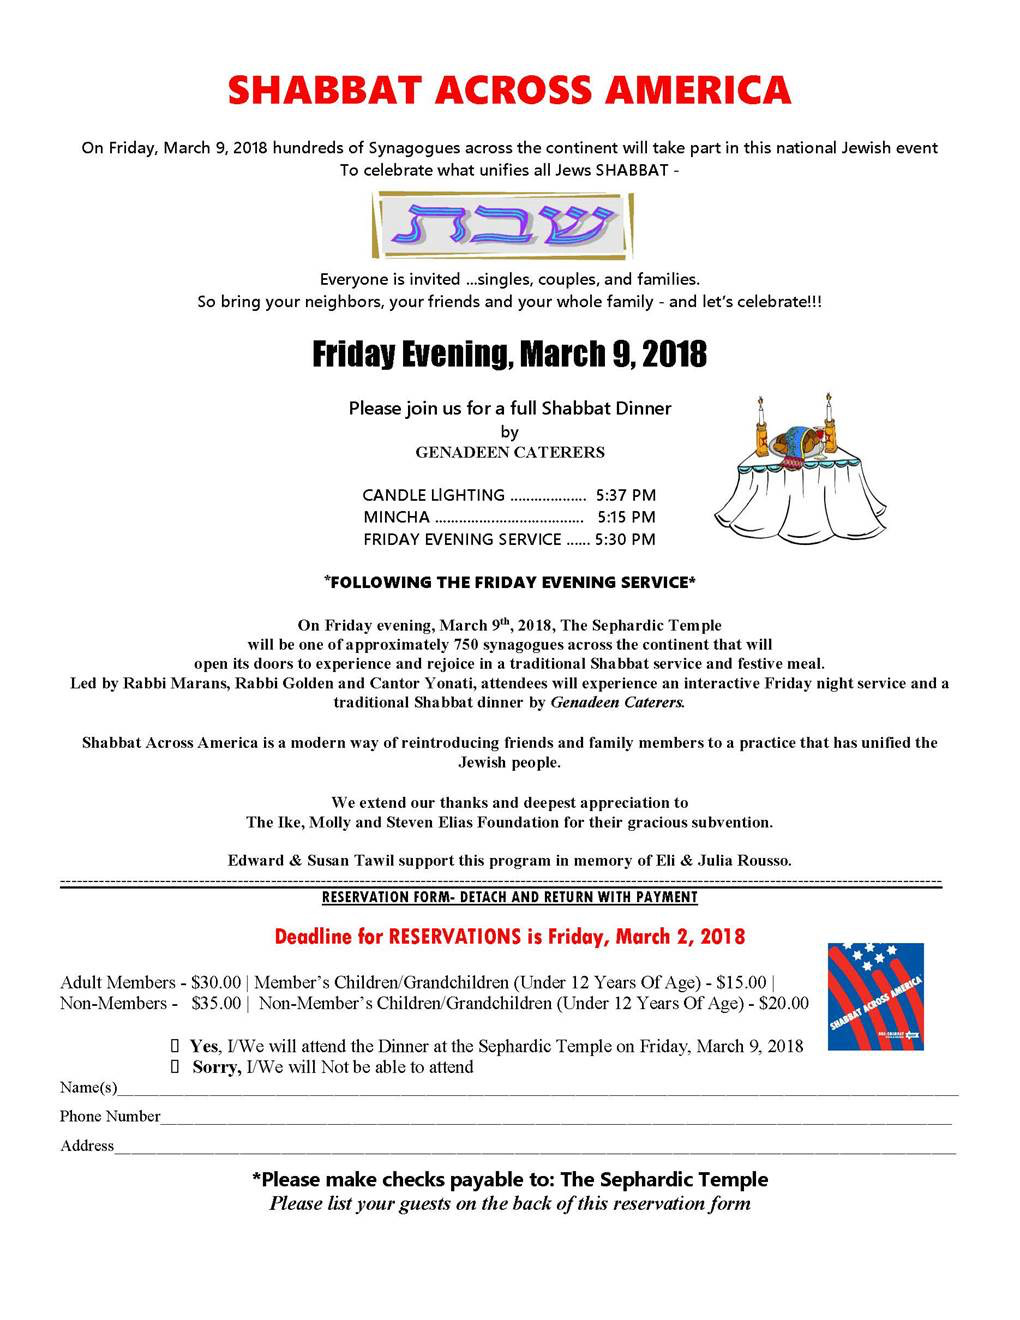 The Sephardic Temple in Cedarhurst will host a Shabbat Across America event on March 9.